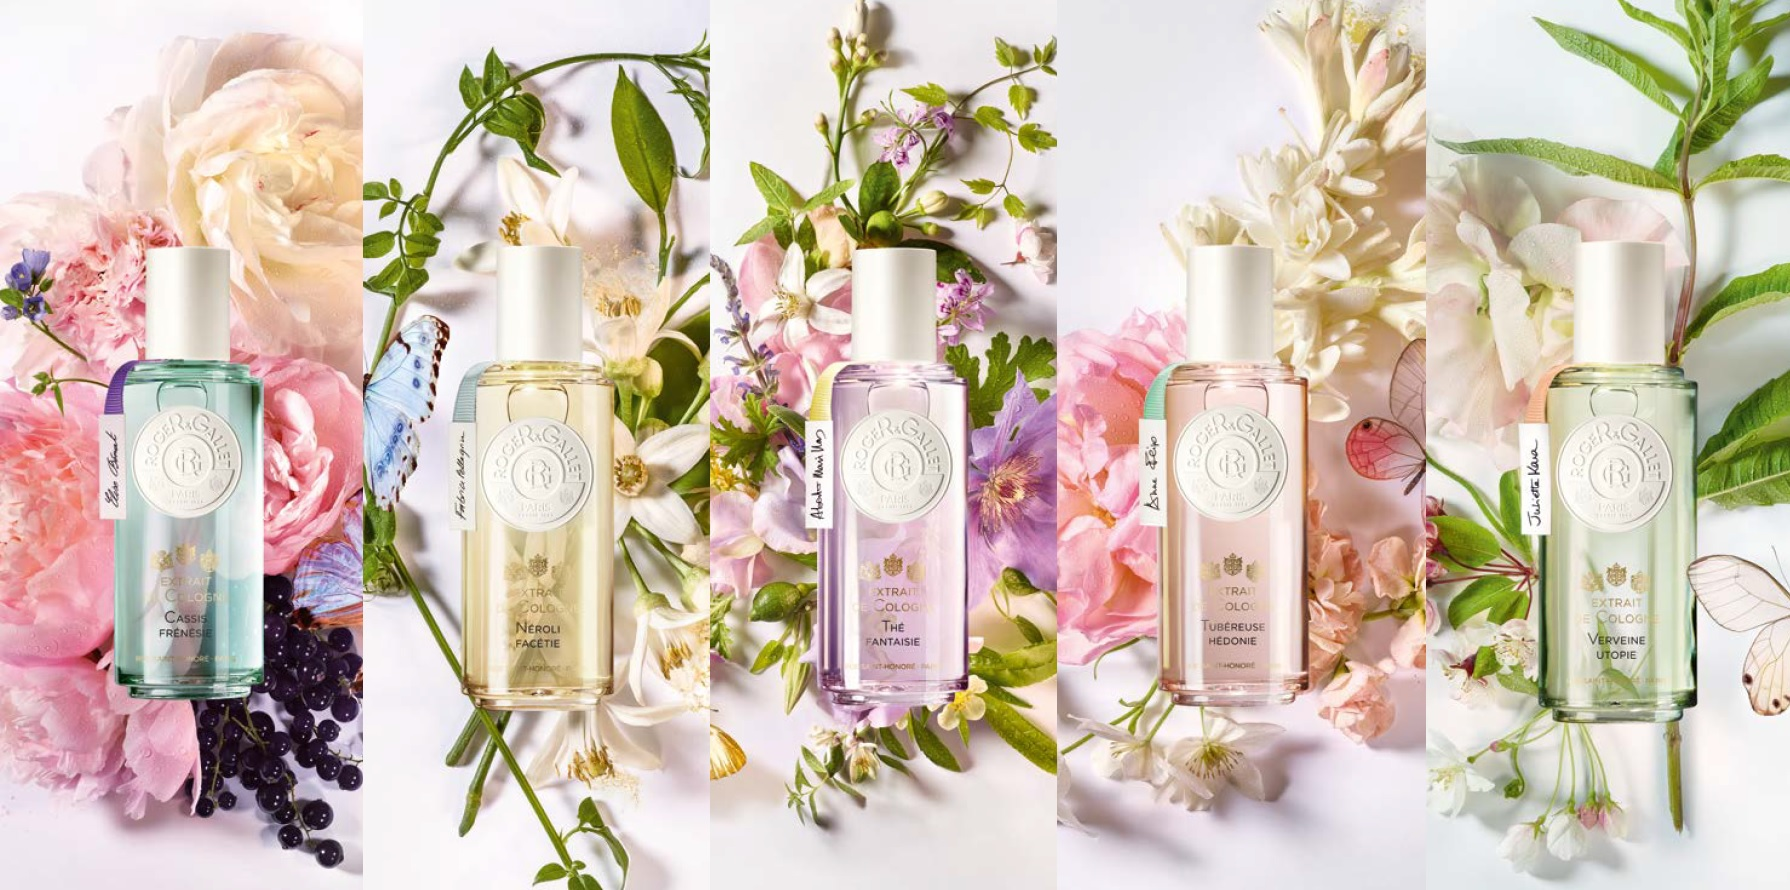 extraits de cologne roger & gallet decor